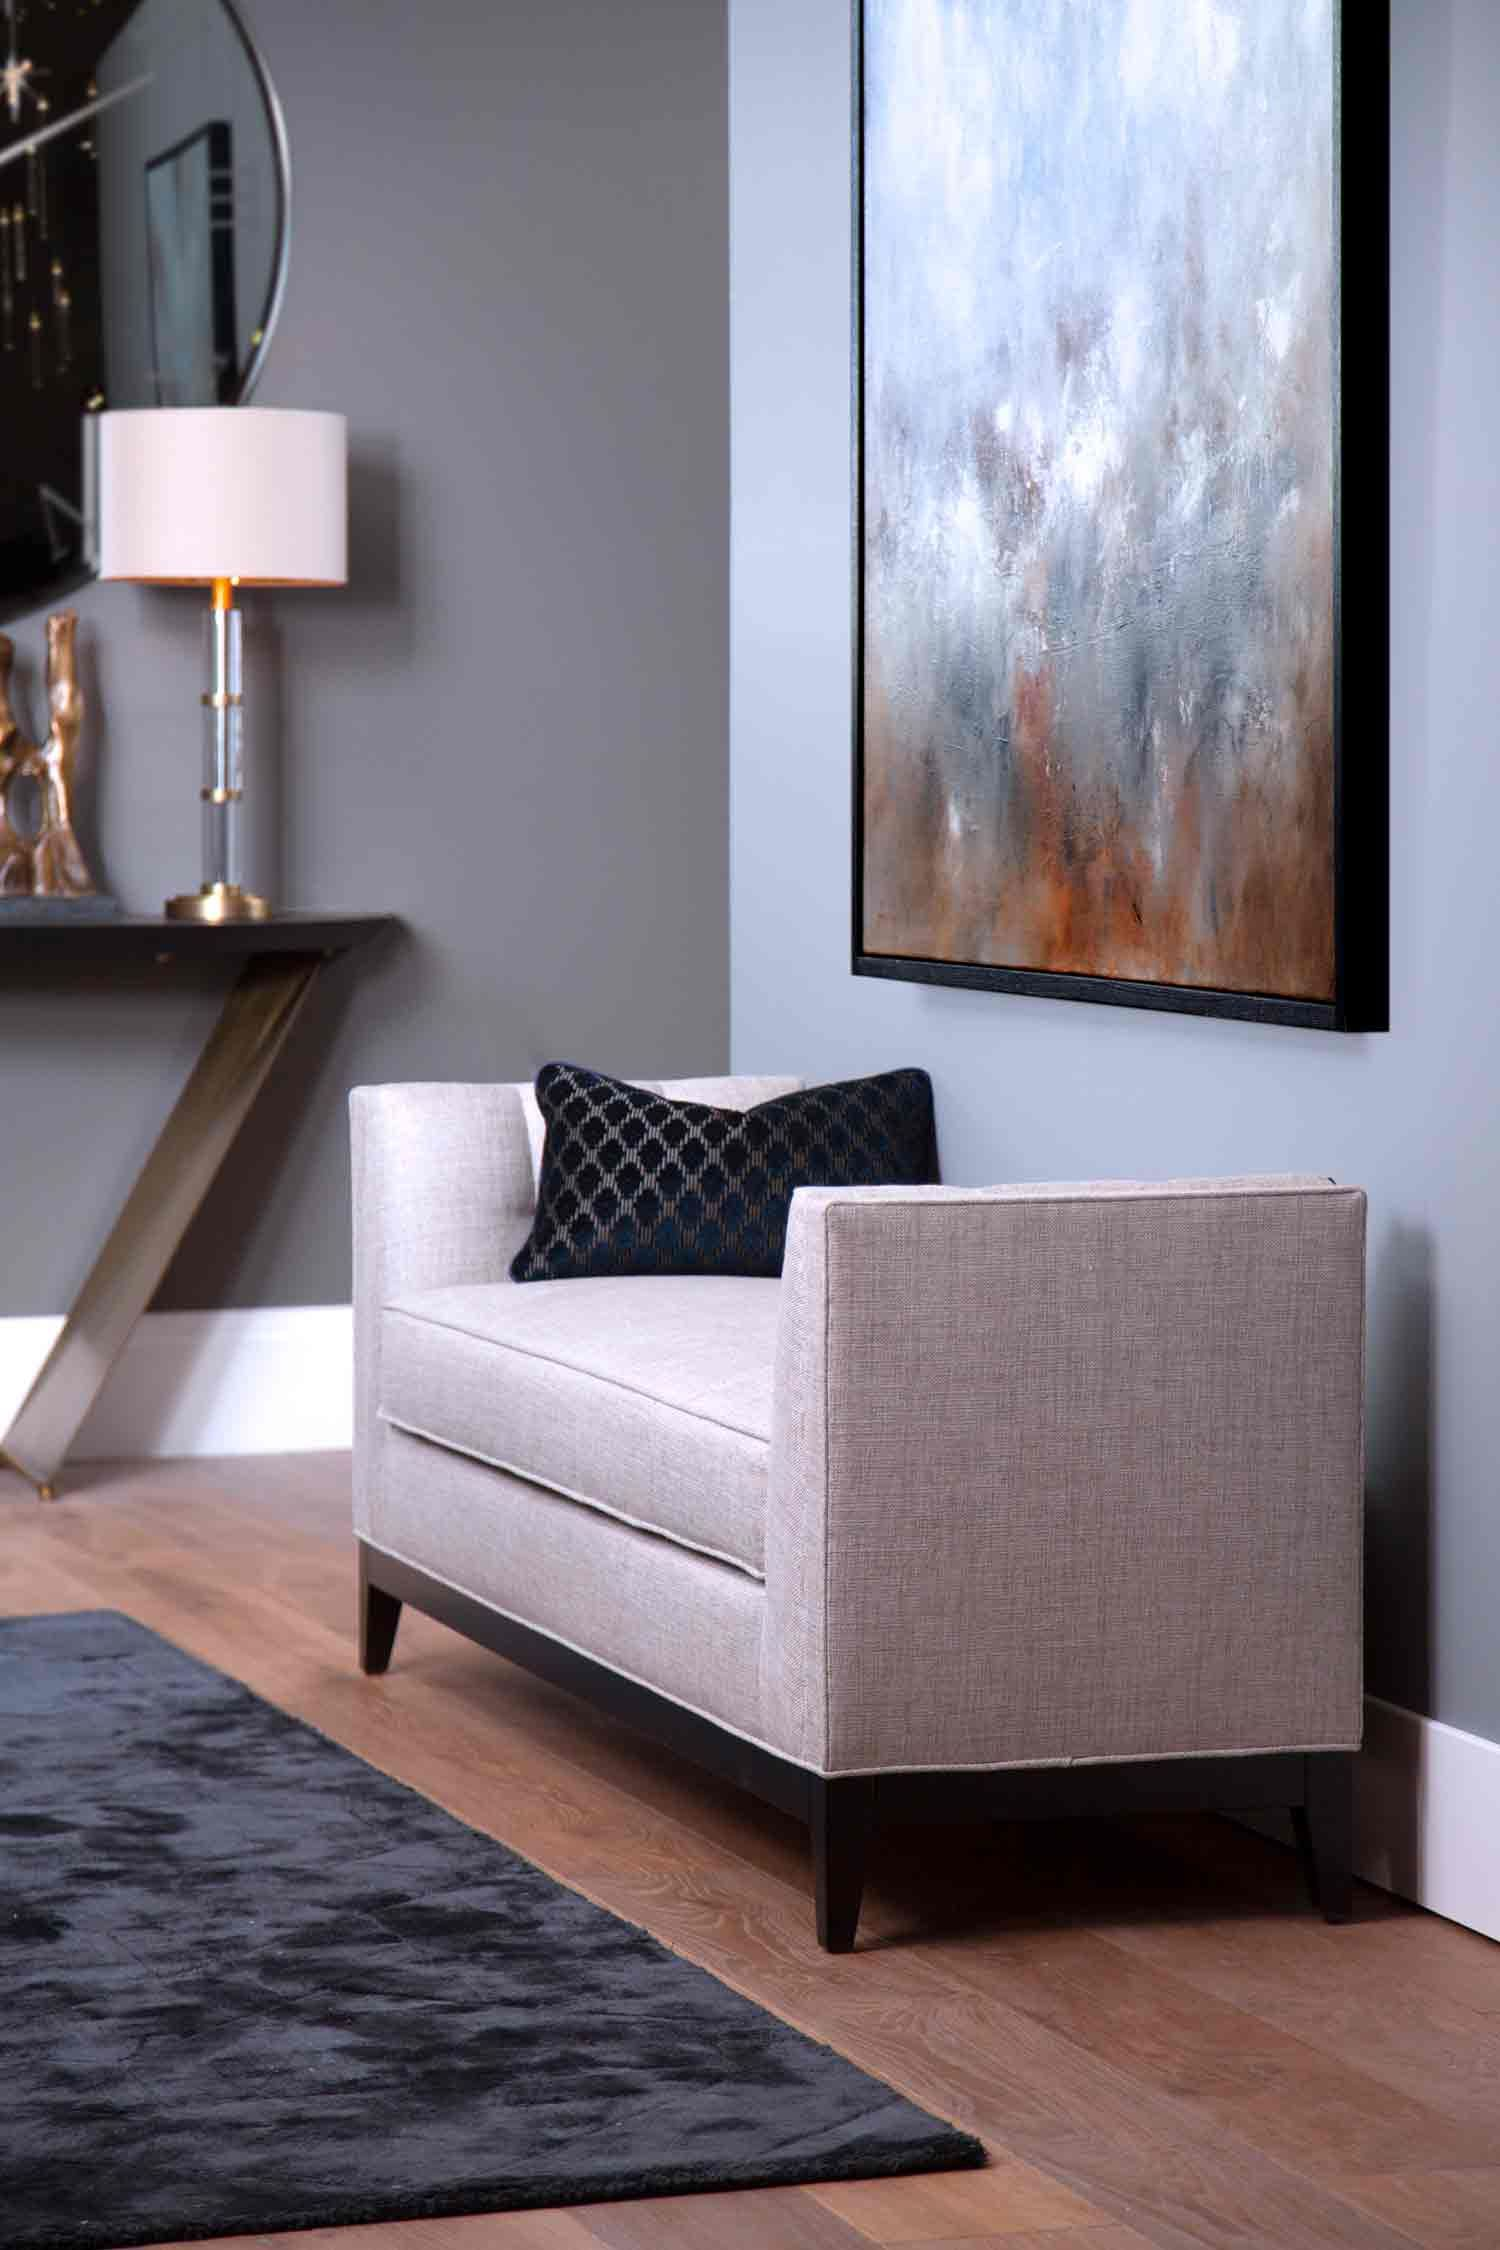 The Classical Timeless Style Of The Oh So Favourite Alexander Sofa Is Now Available A Upholstered Bench Living Room Living Room Bench Upholstered Bench Bedroom #upholstered #bench #for #living #room